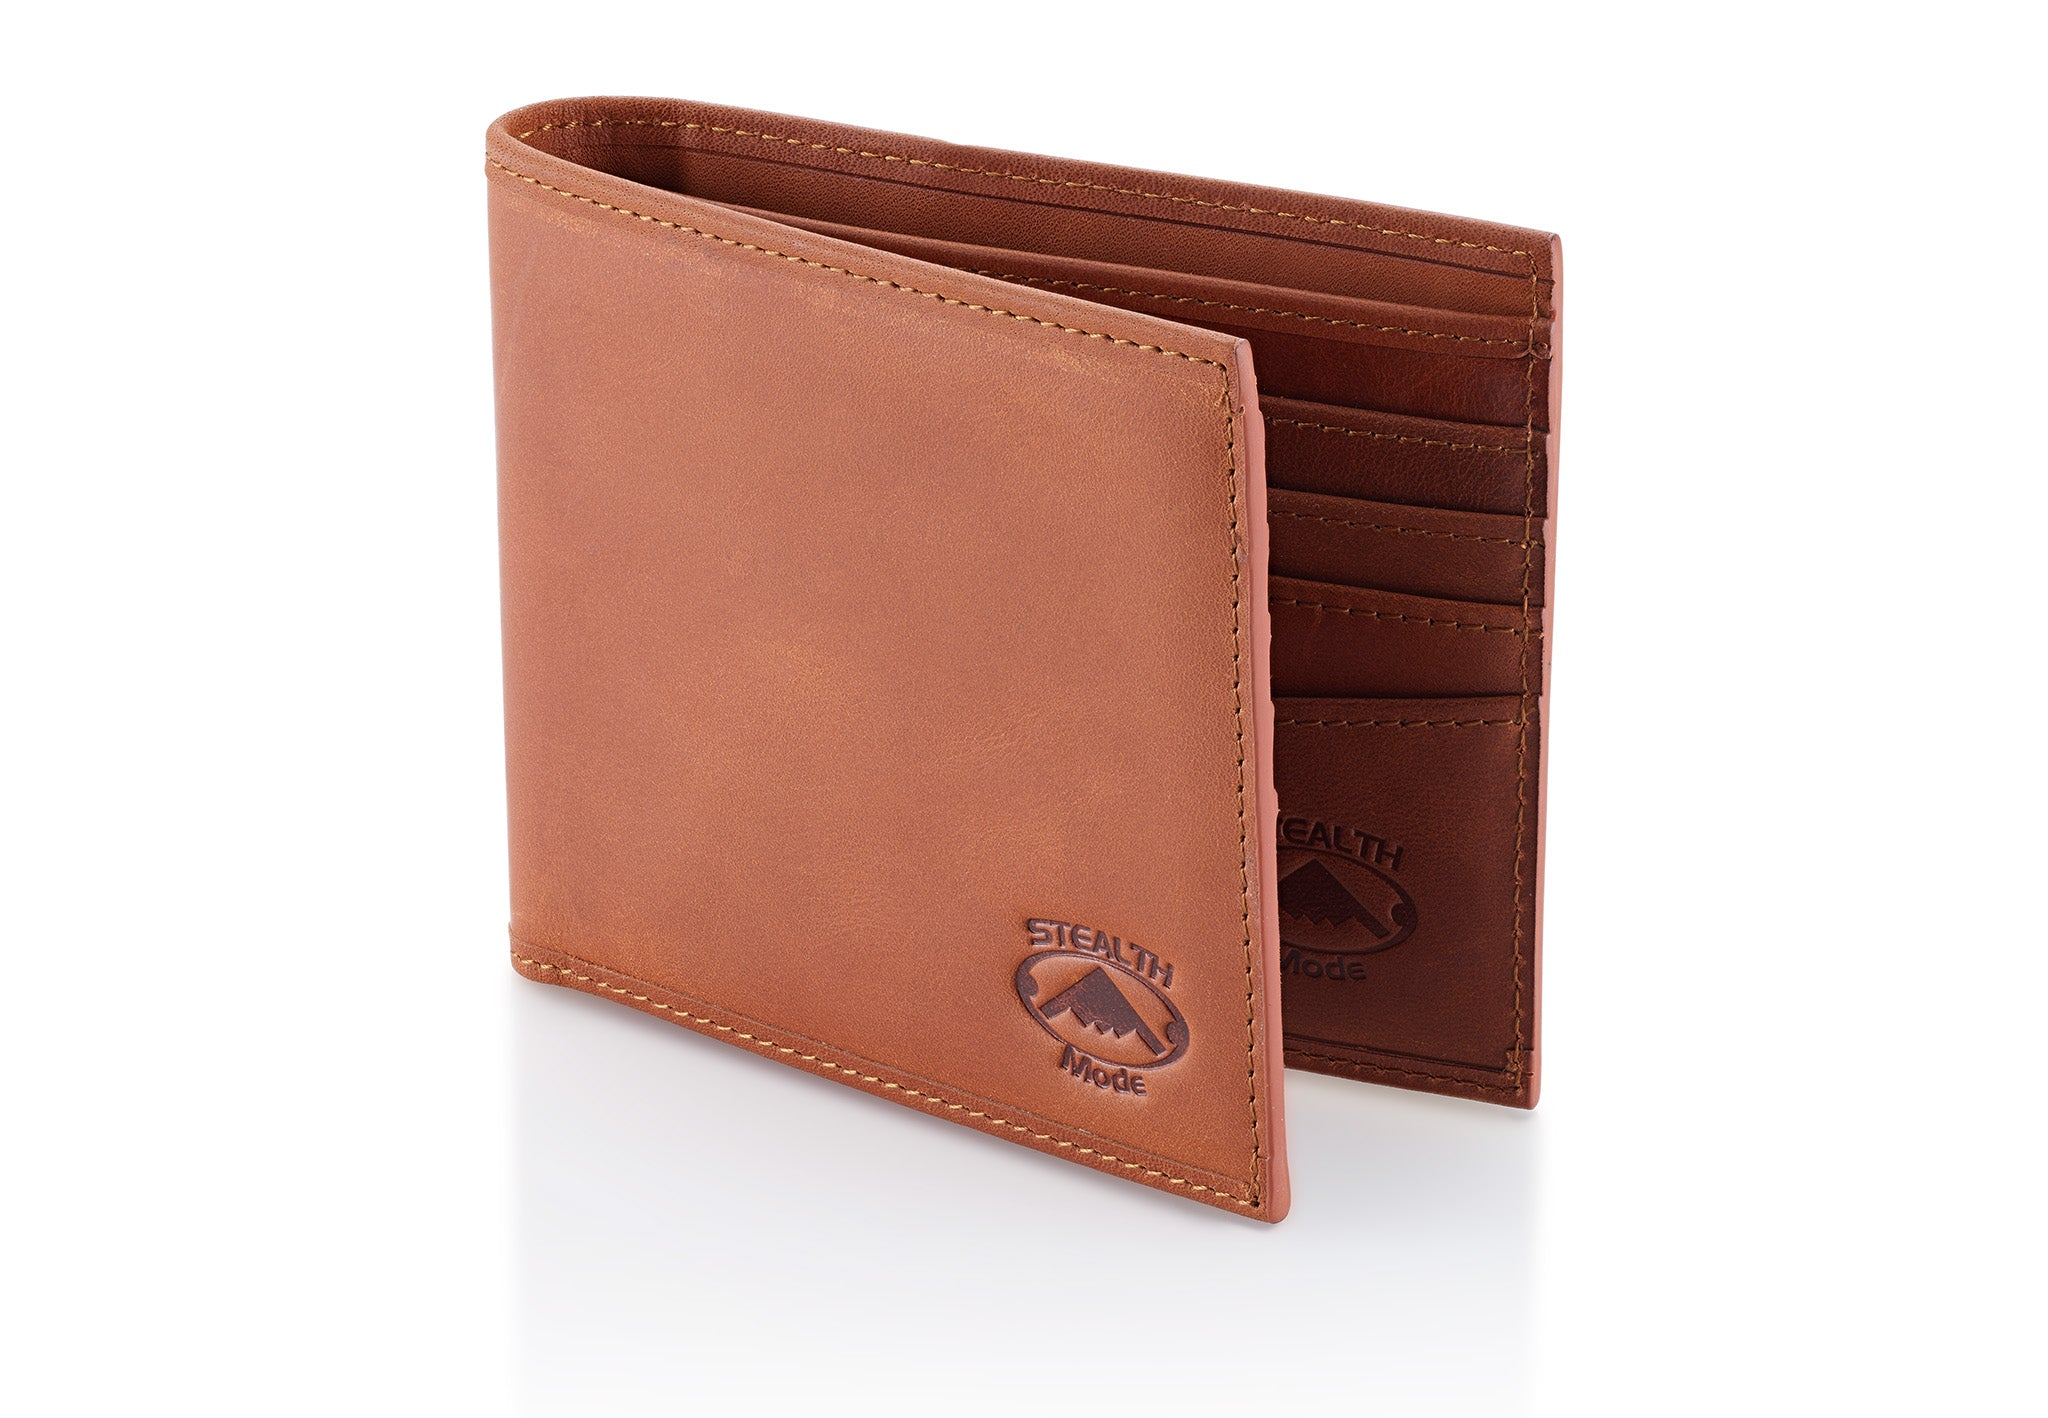 Stealth Mode Men's RFID Blocking Brown Napa Leather Wallet